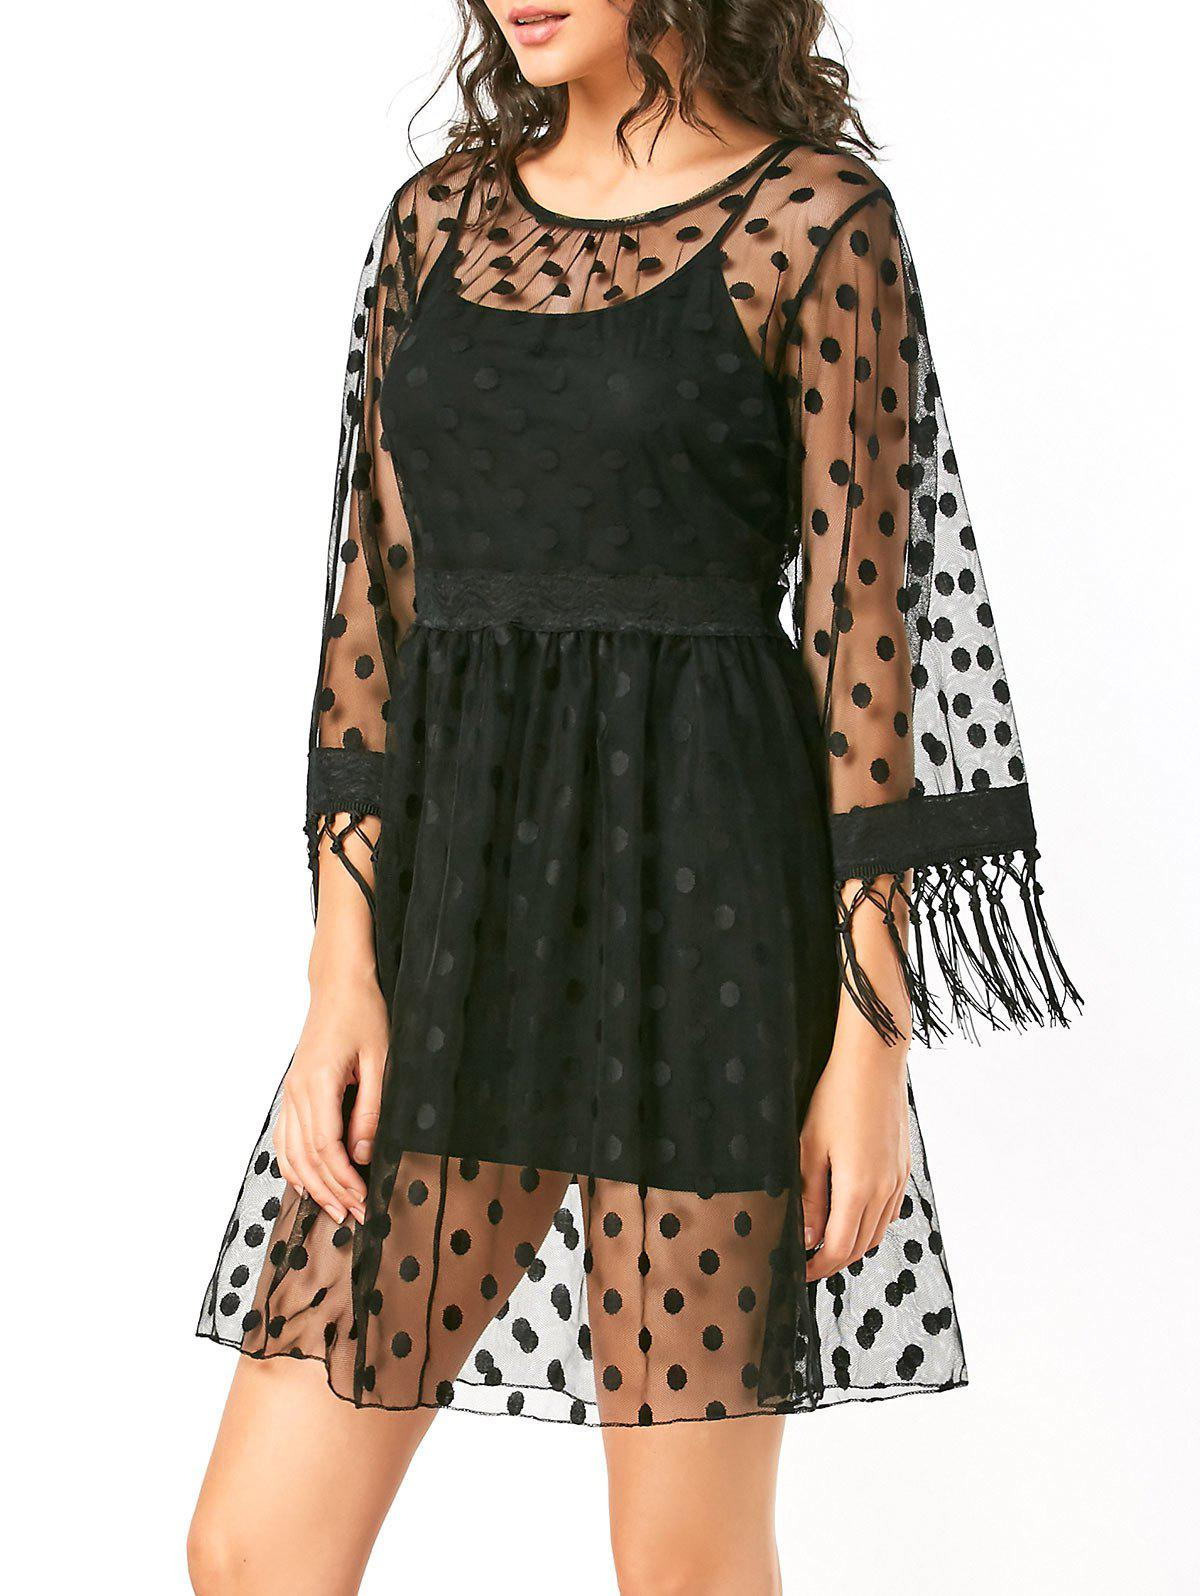 Cheap Polka Dot High Waist Sheer Lace Dress